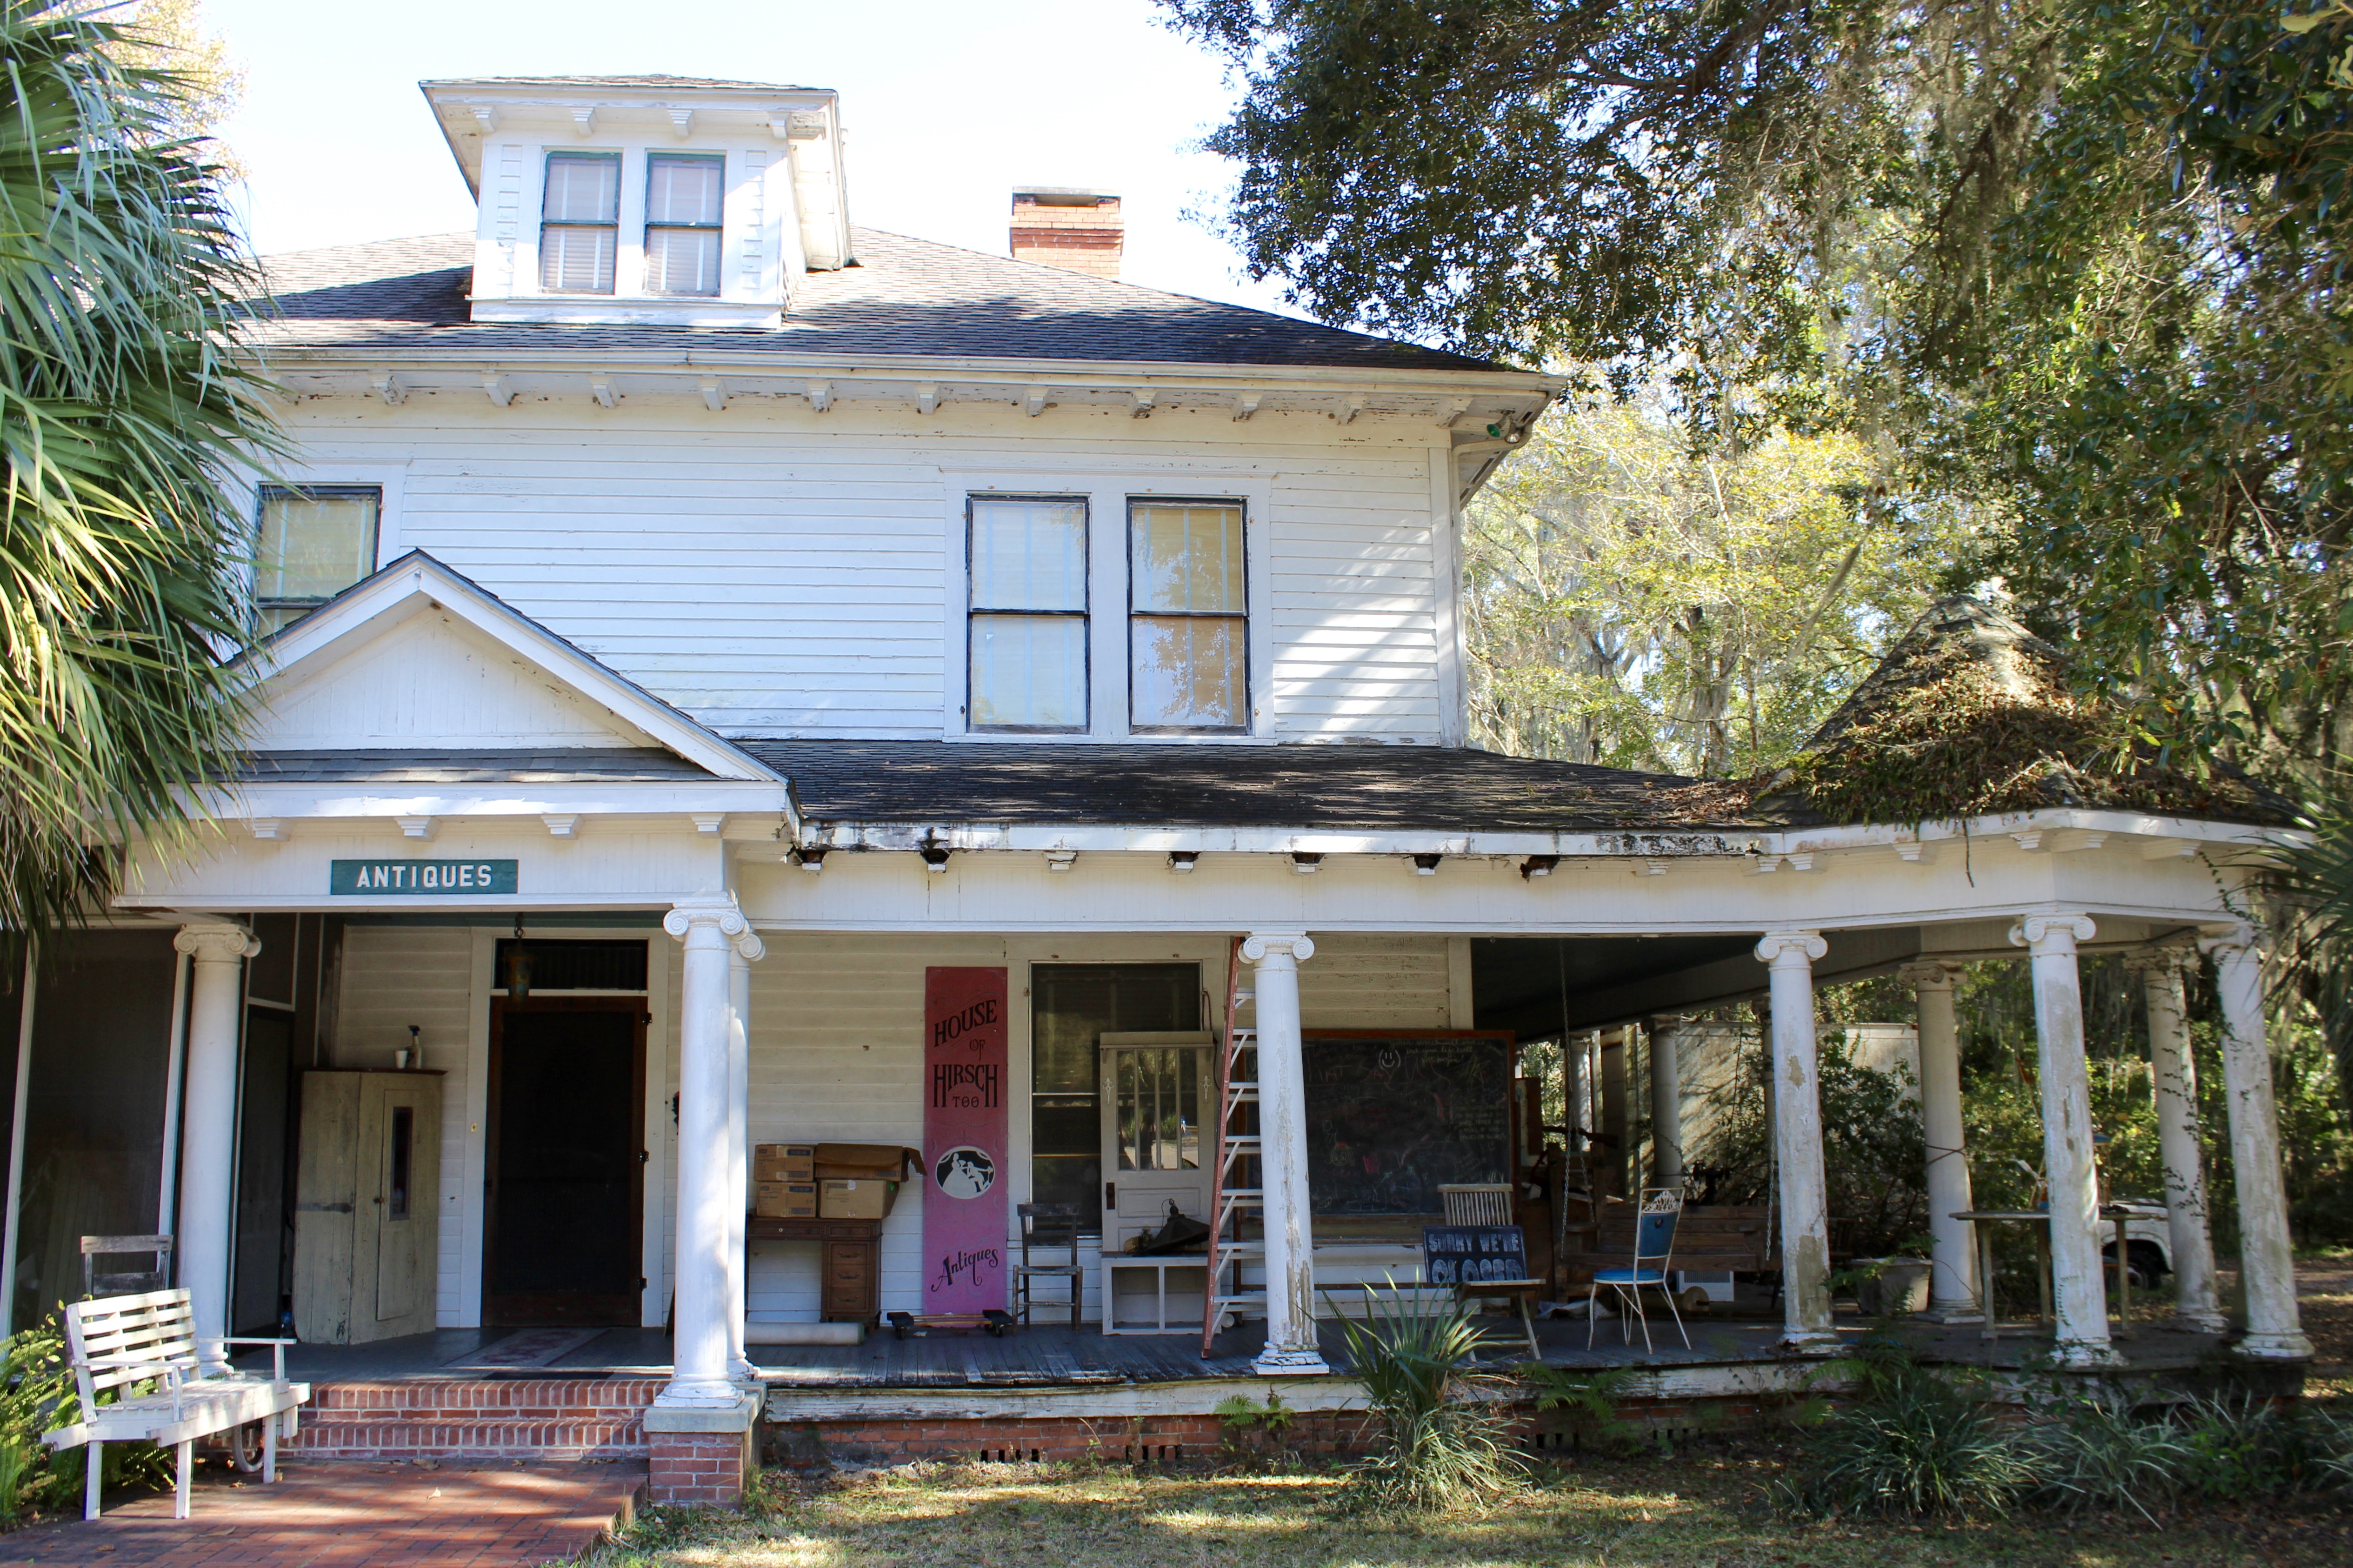 Town of Micanopy, FL